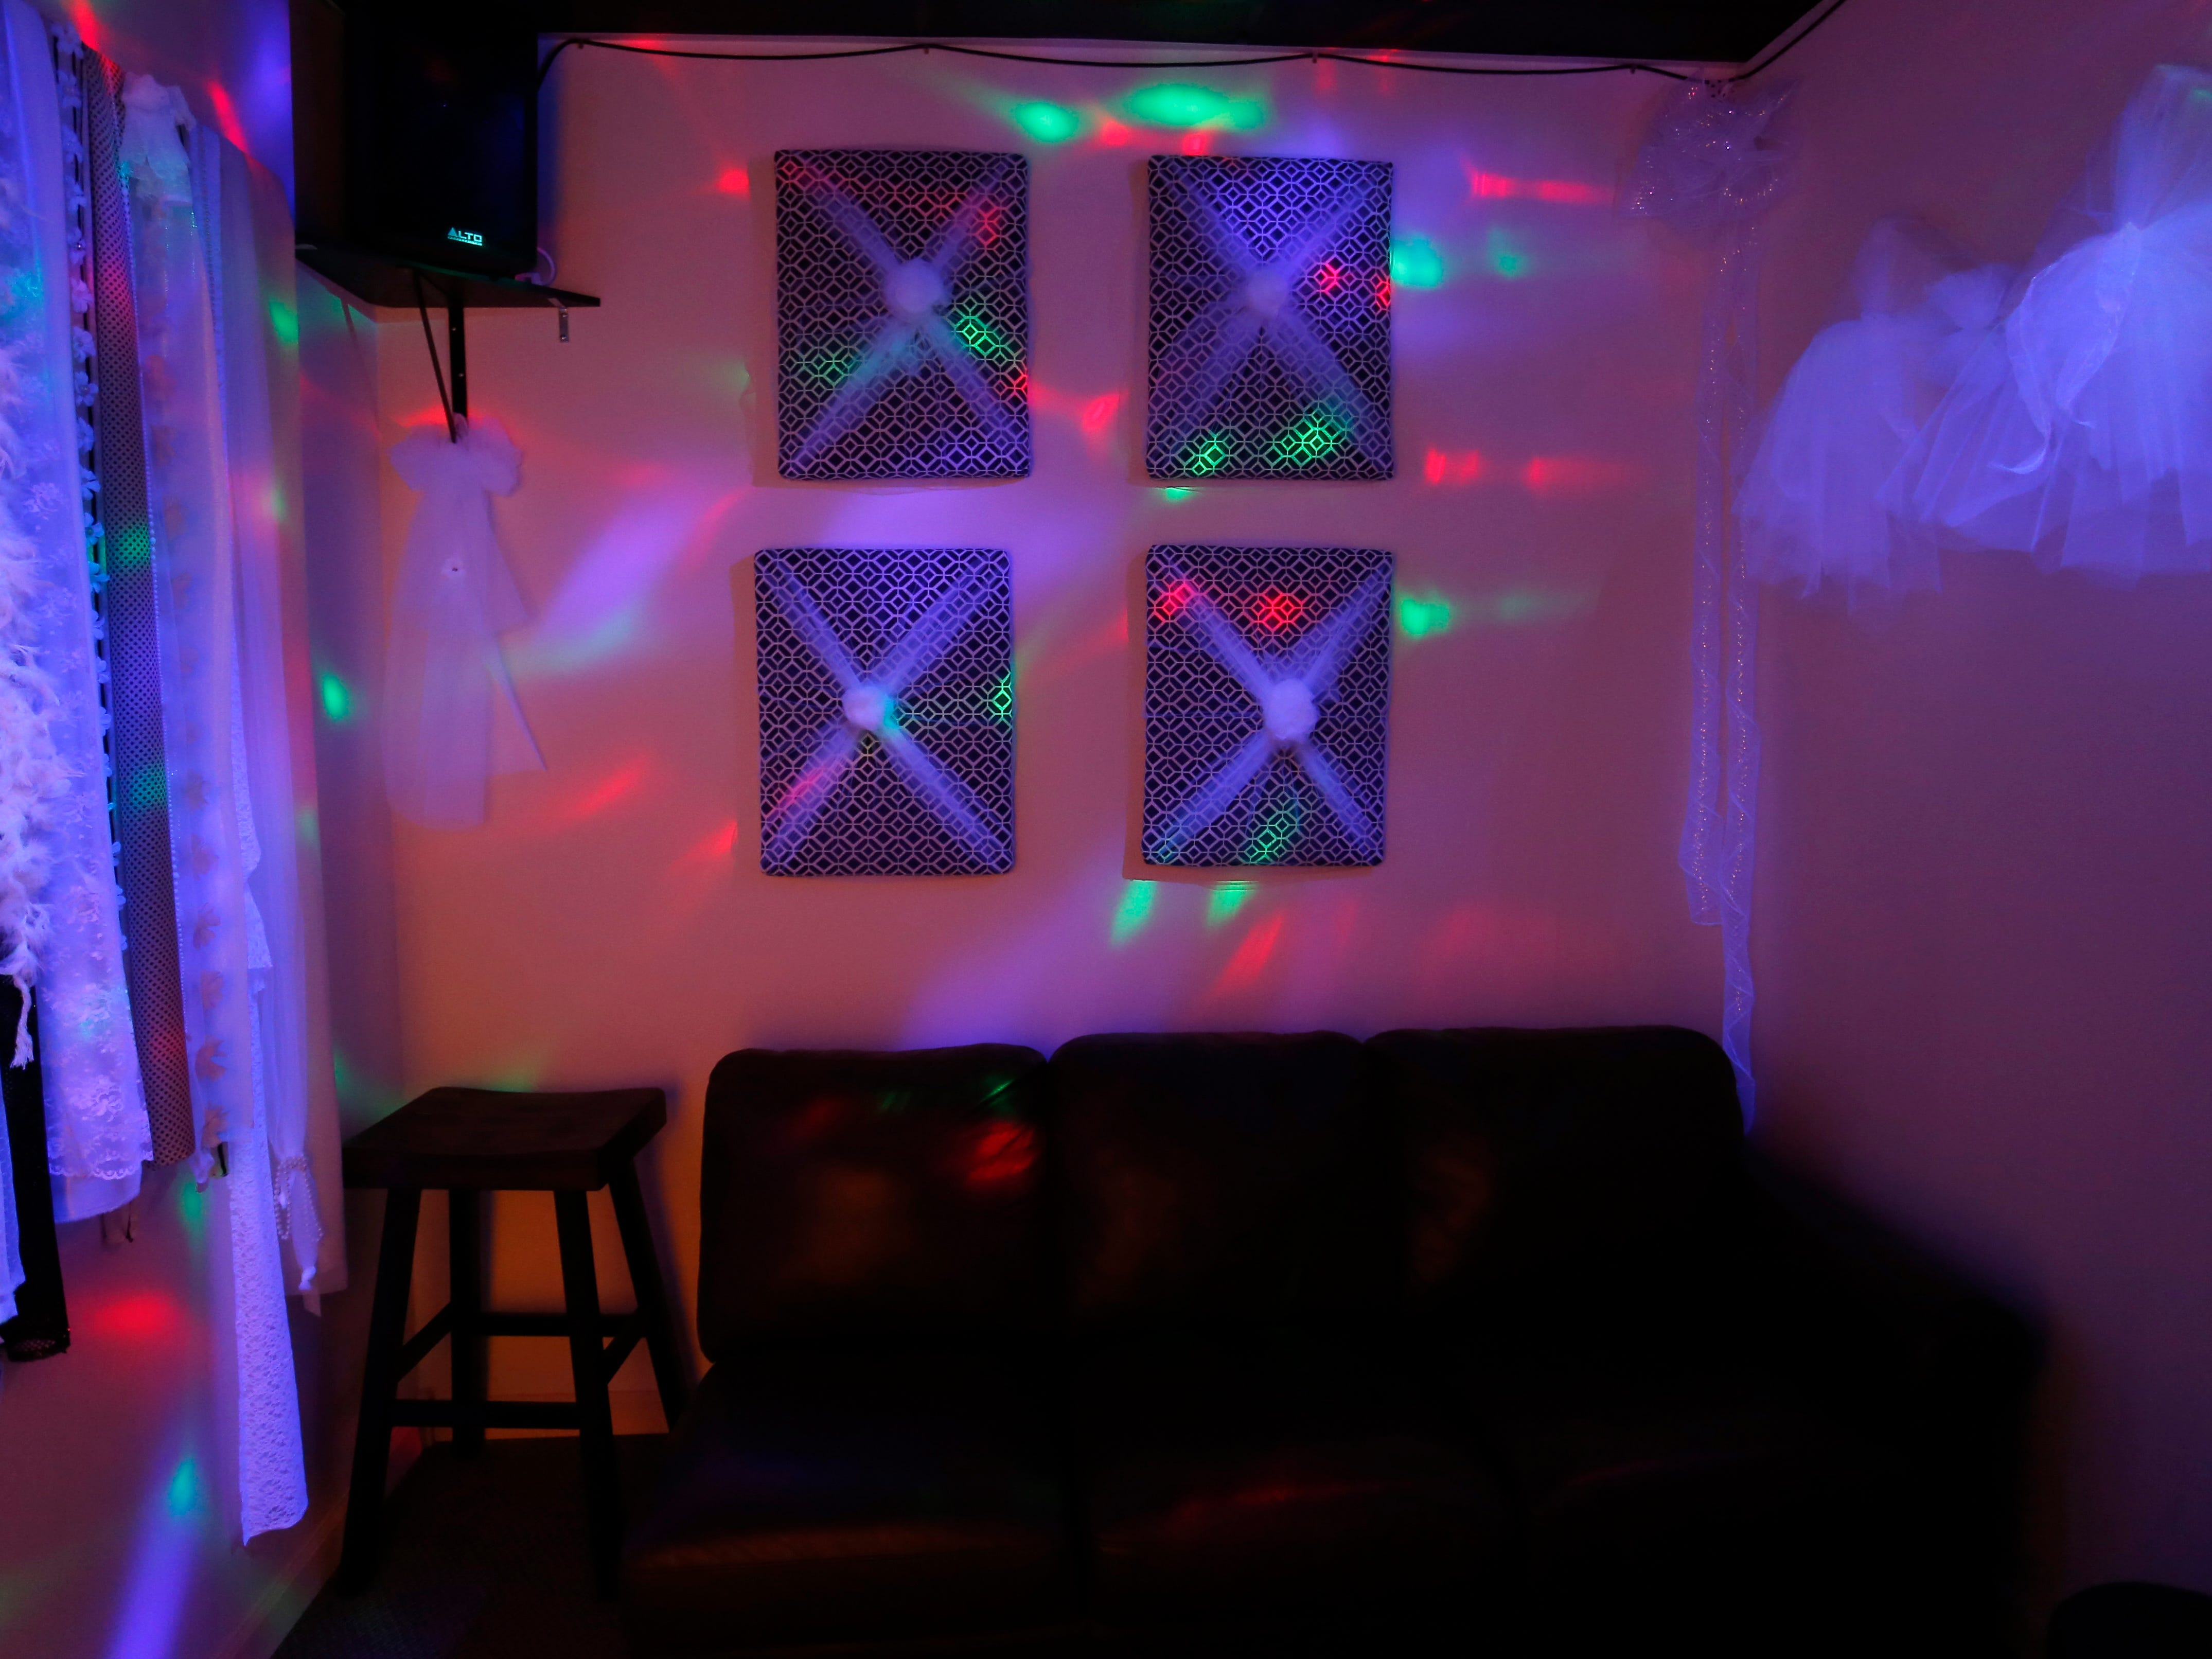 Lights dance on the walls in one of the private karaoke rooms at The Hangout, a new entertainment venue preparing to open on Glenstone Ave. on Wednesday, Jan. 16, 2019.